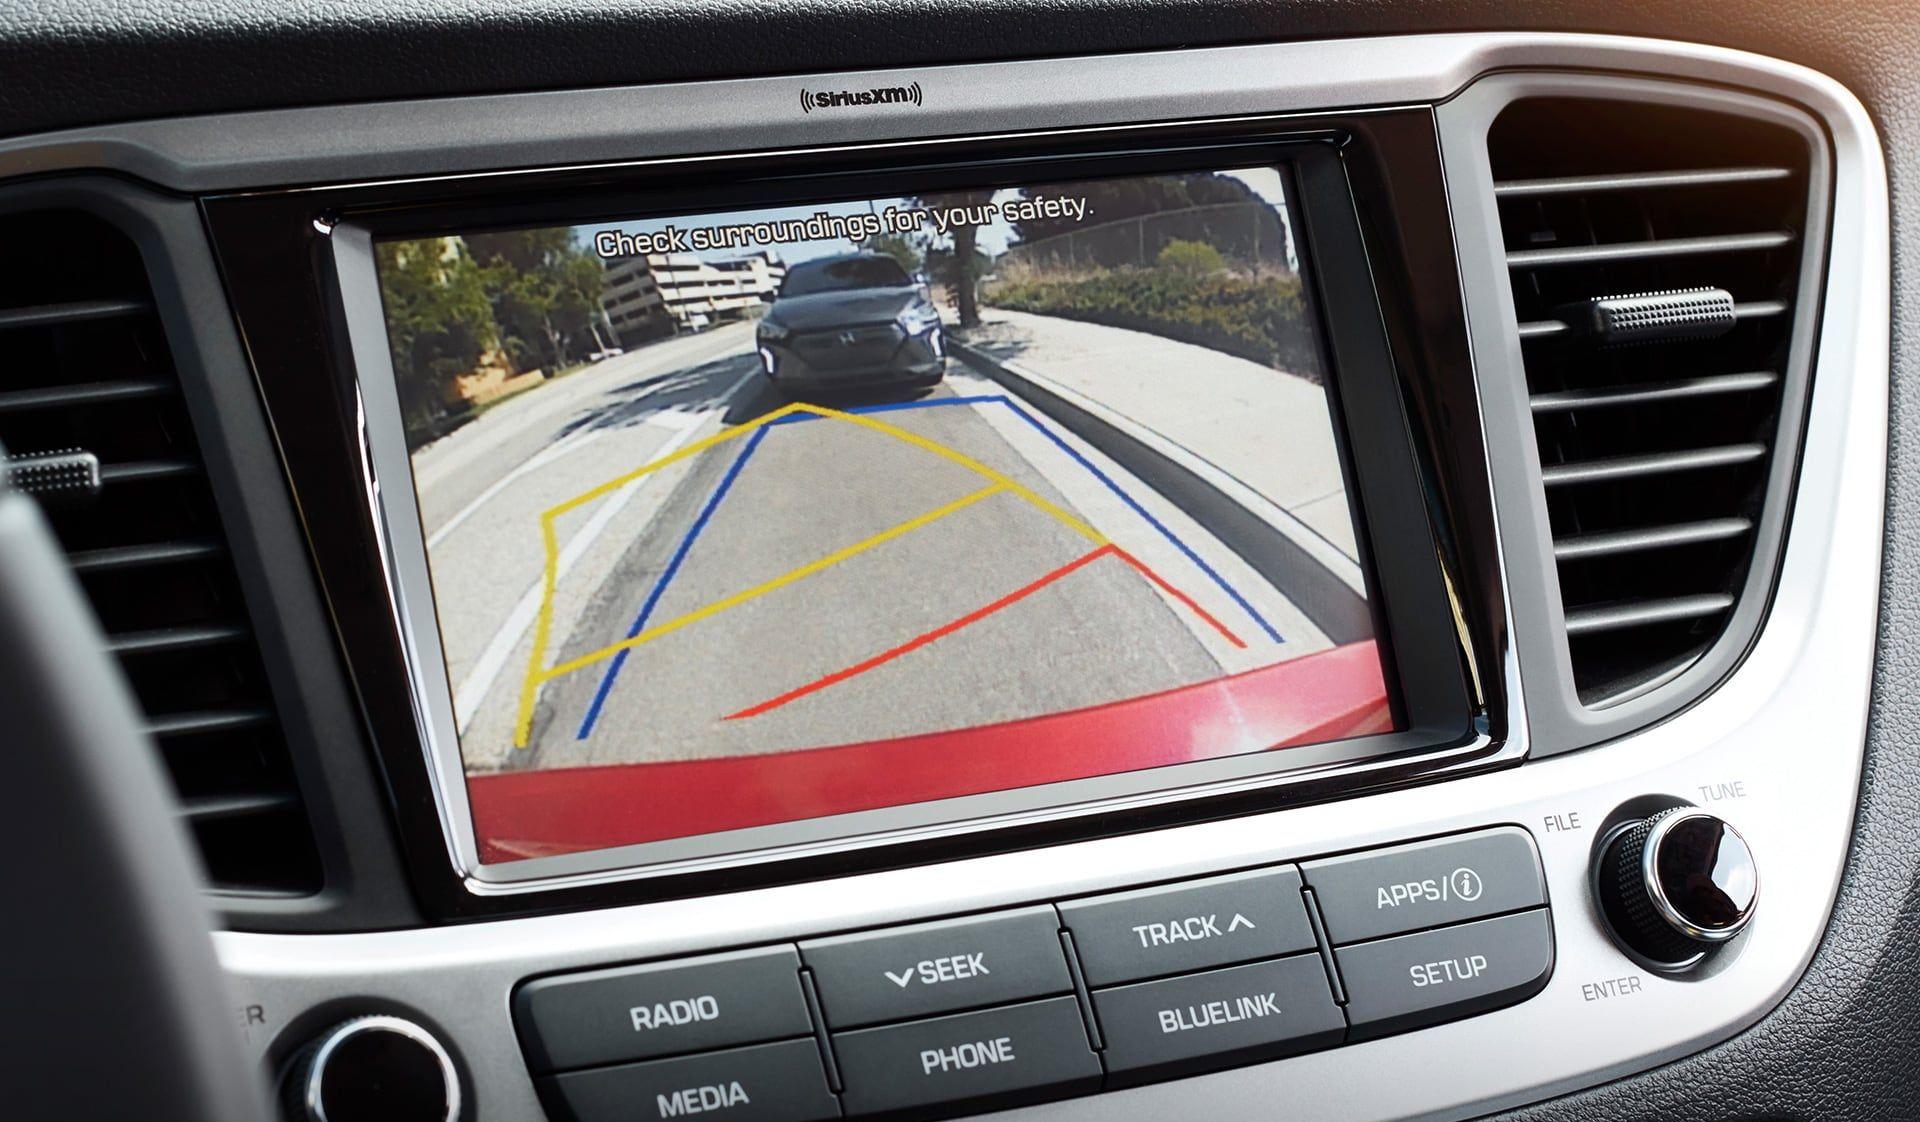 RearView Camera in the Accent